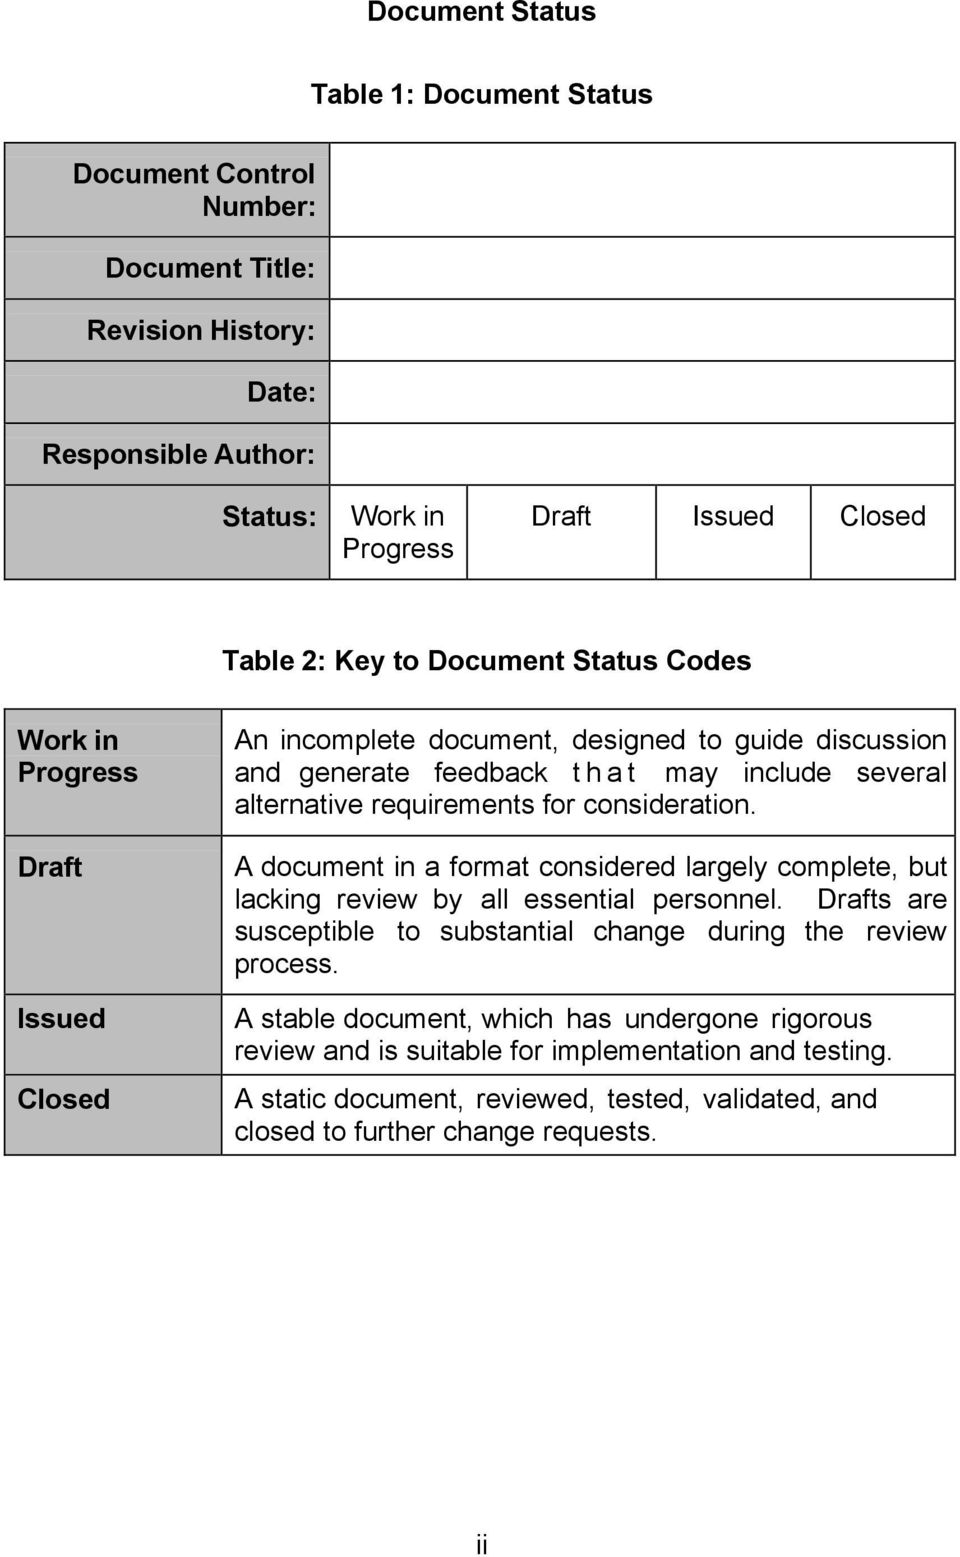 for consideration. A document in a format considered largely complete, but lacking review by all essential personnel. Drafts are susceptible to substantial change during the review process.